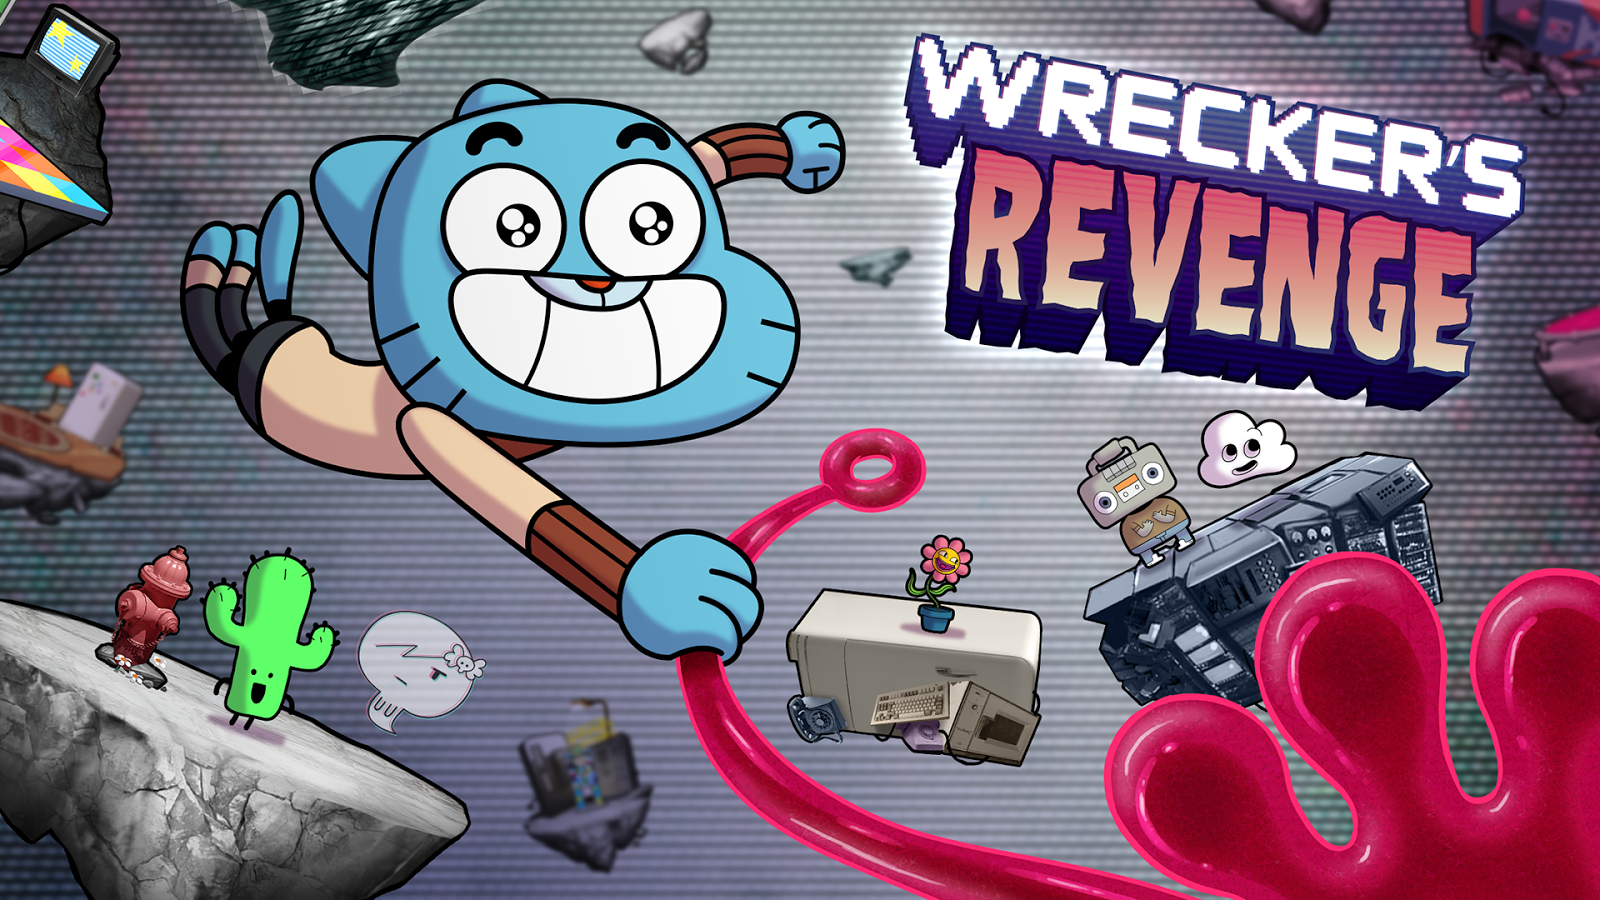 Wrecker's Revenge - Gumball- screenshot